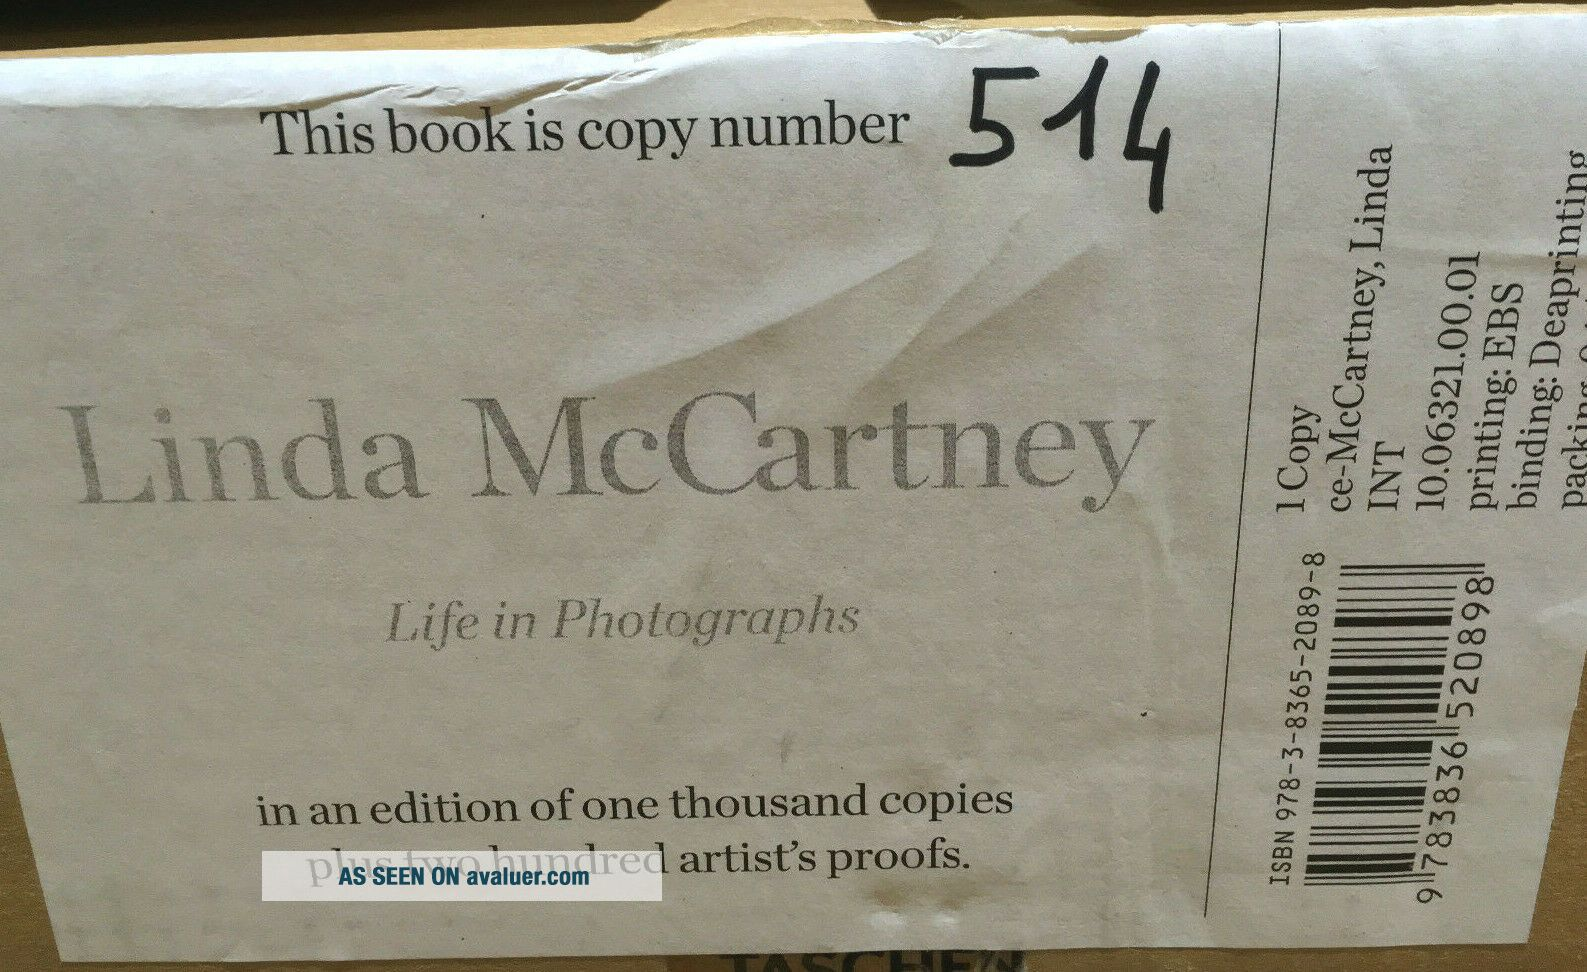 Beatles Paul McCartney SIGNED Taschen Life in Photographs Book IMMACULATE